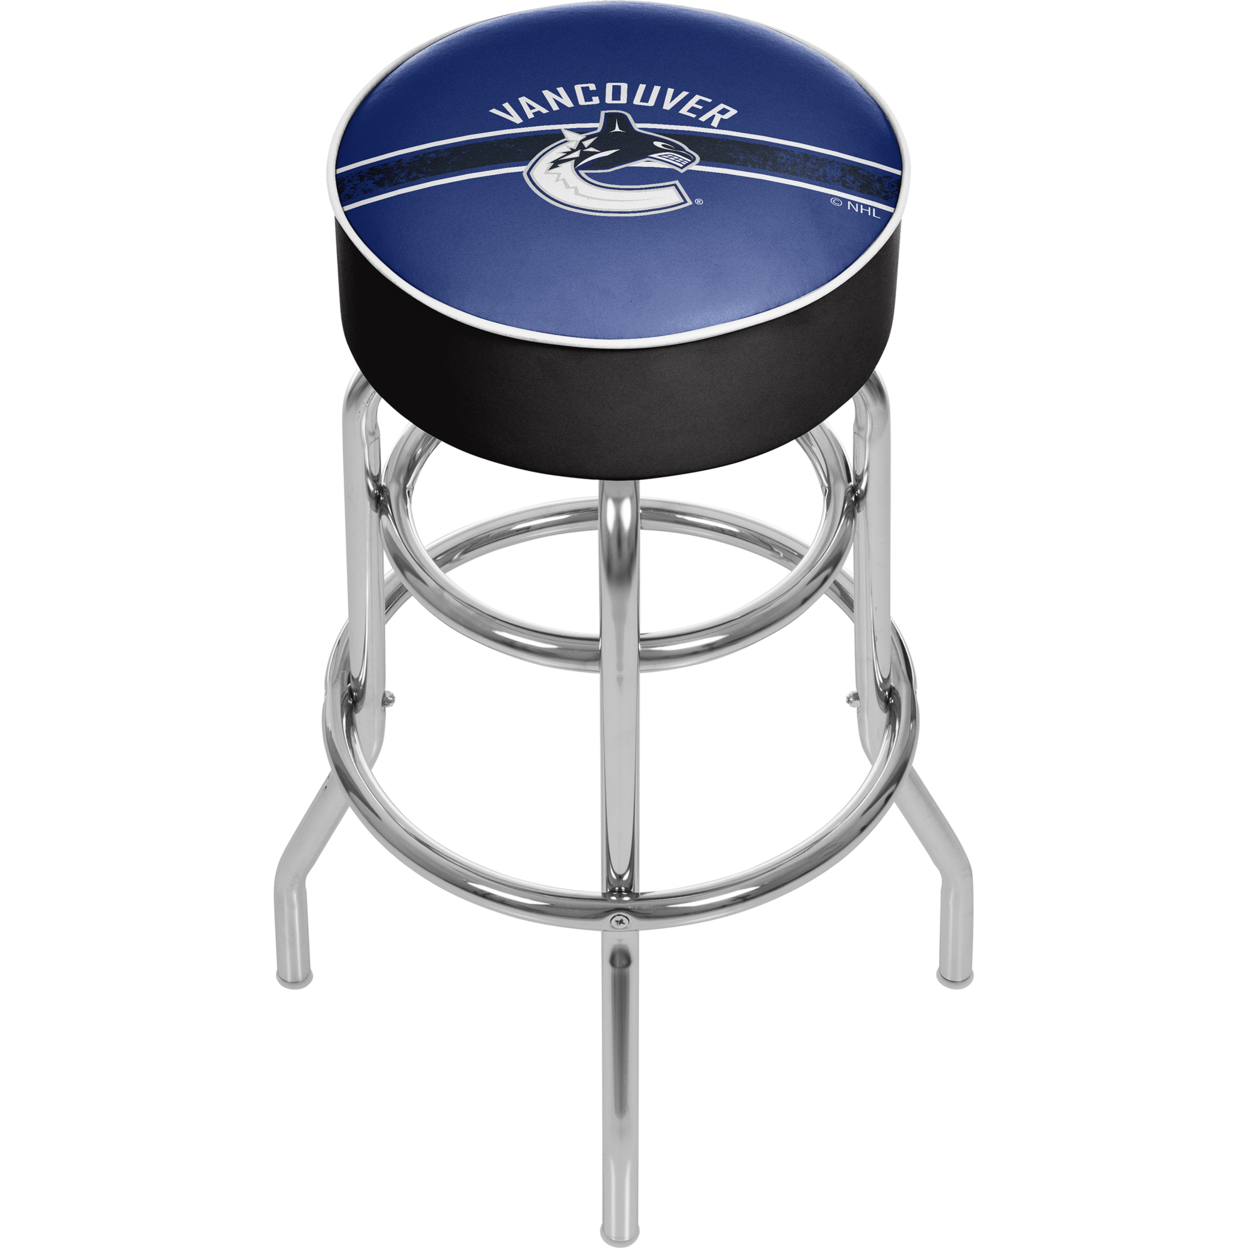 NHL Chrome Padded Swivel Bar Stool 30 Inches High - Vancouver Canucks